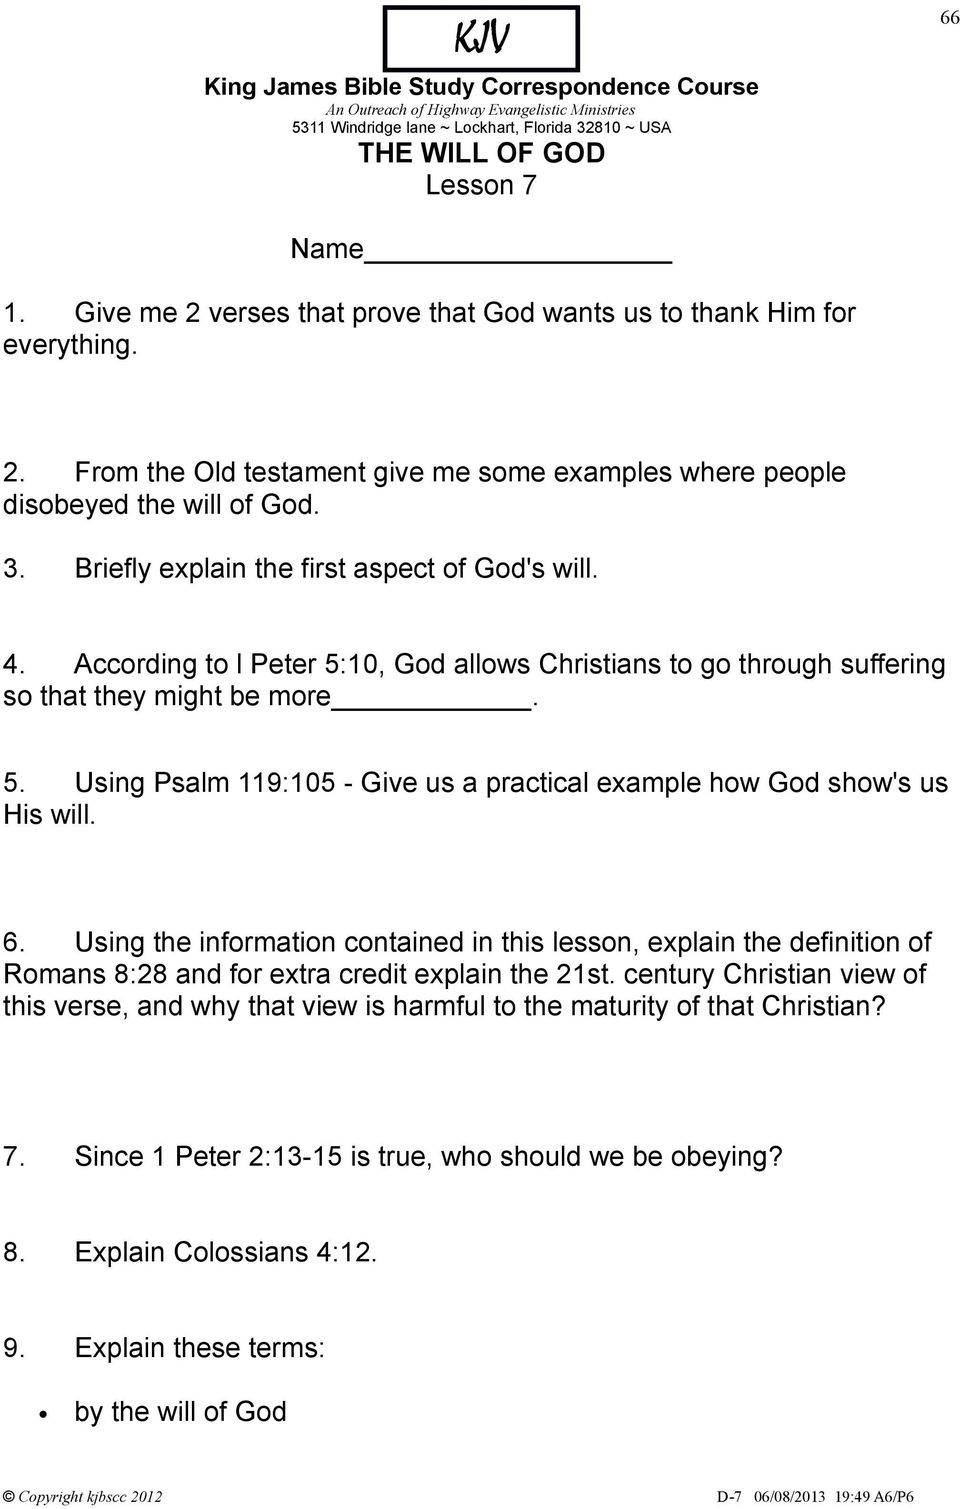 6. Using the information contained in this lesson, explain the definition of Romans 8:28 and for extra credit explain the 21st.